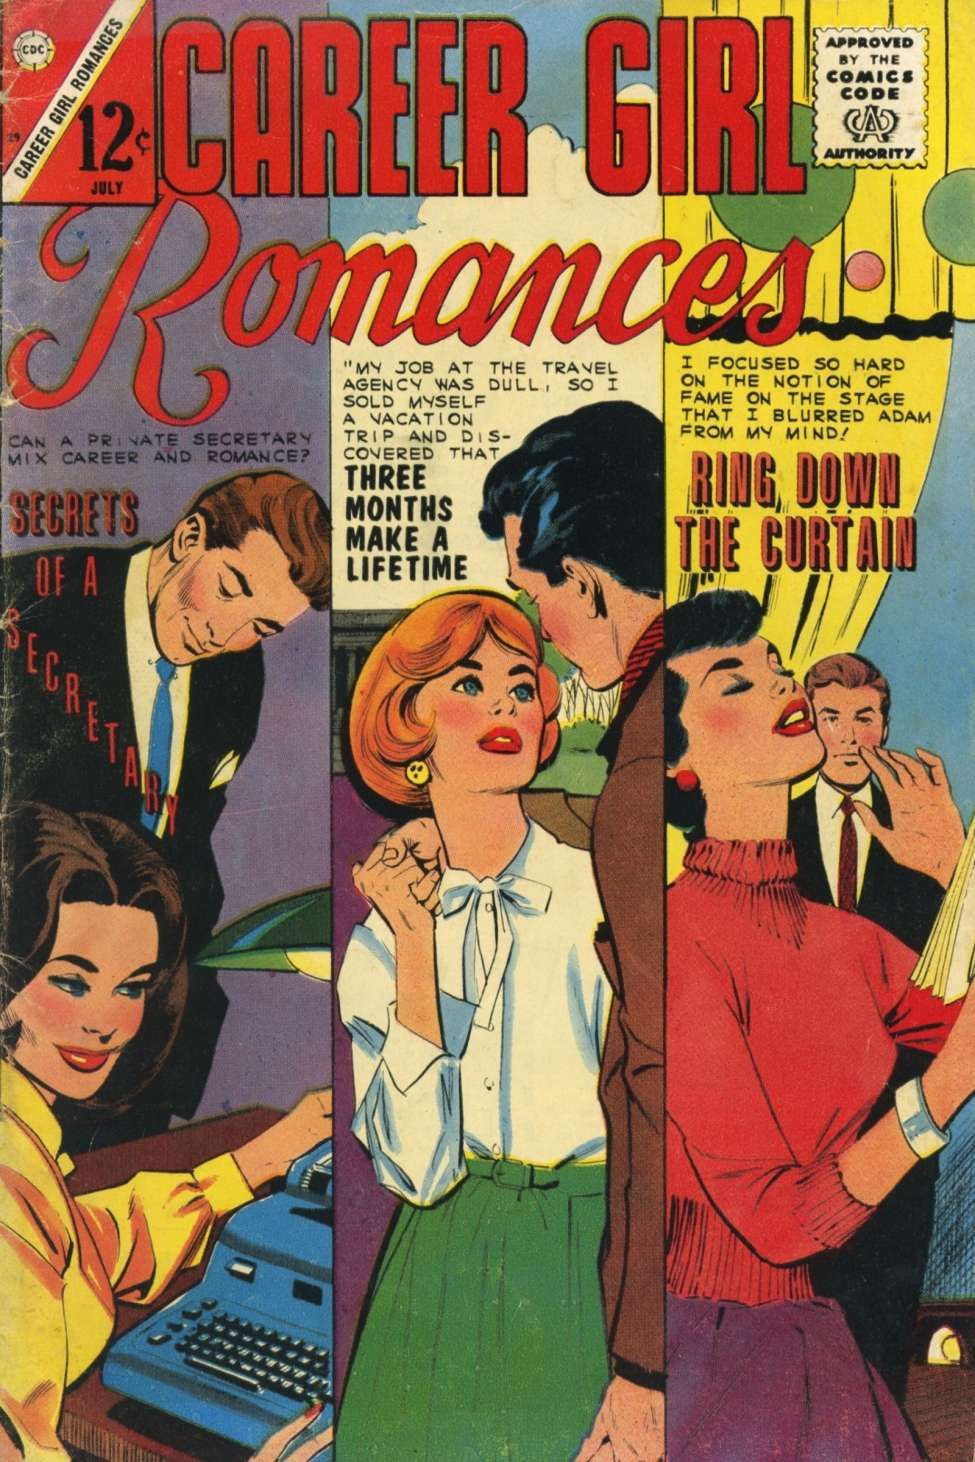 Comic Book Cover Artist Wanted : Comic book cover for career girl romances romance